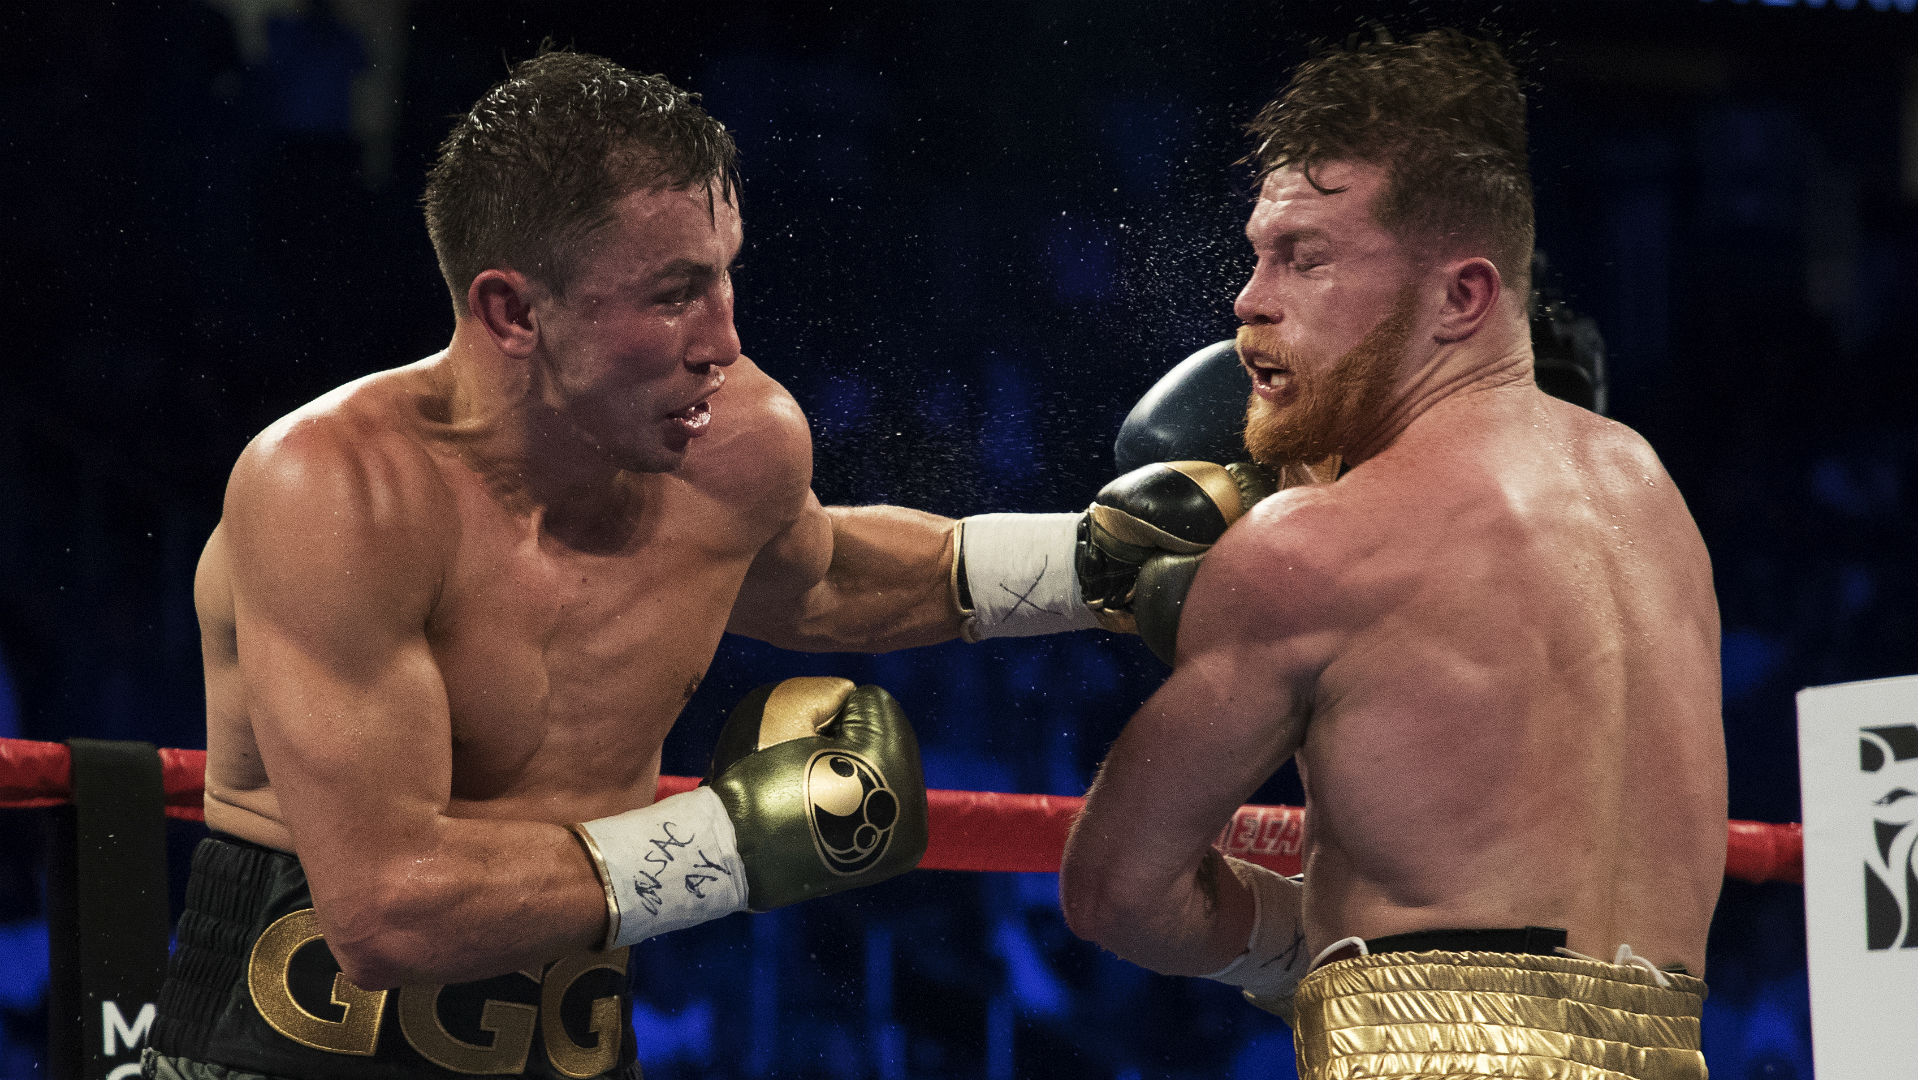 Saul 'Canelo' Alvarez defeats Gennady Golovkin on majority decision""